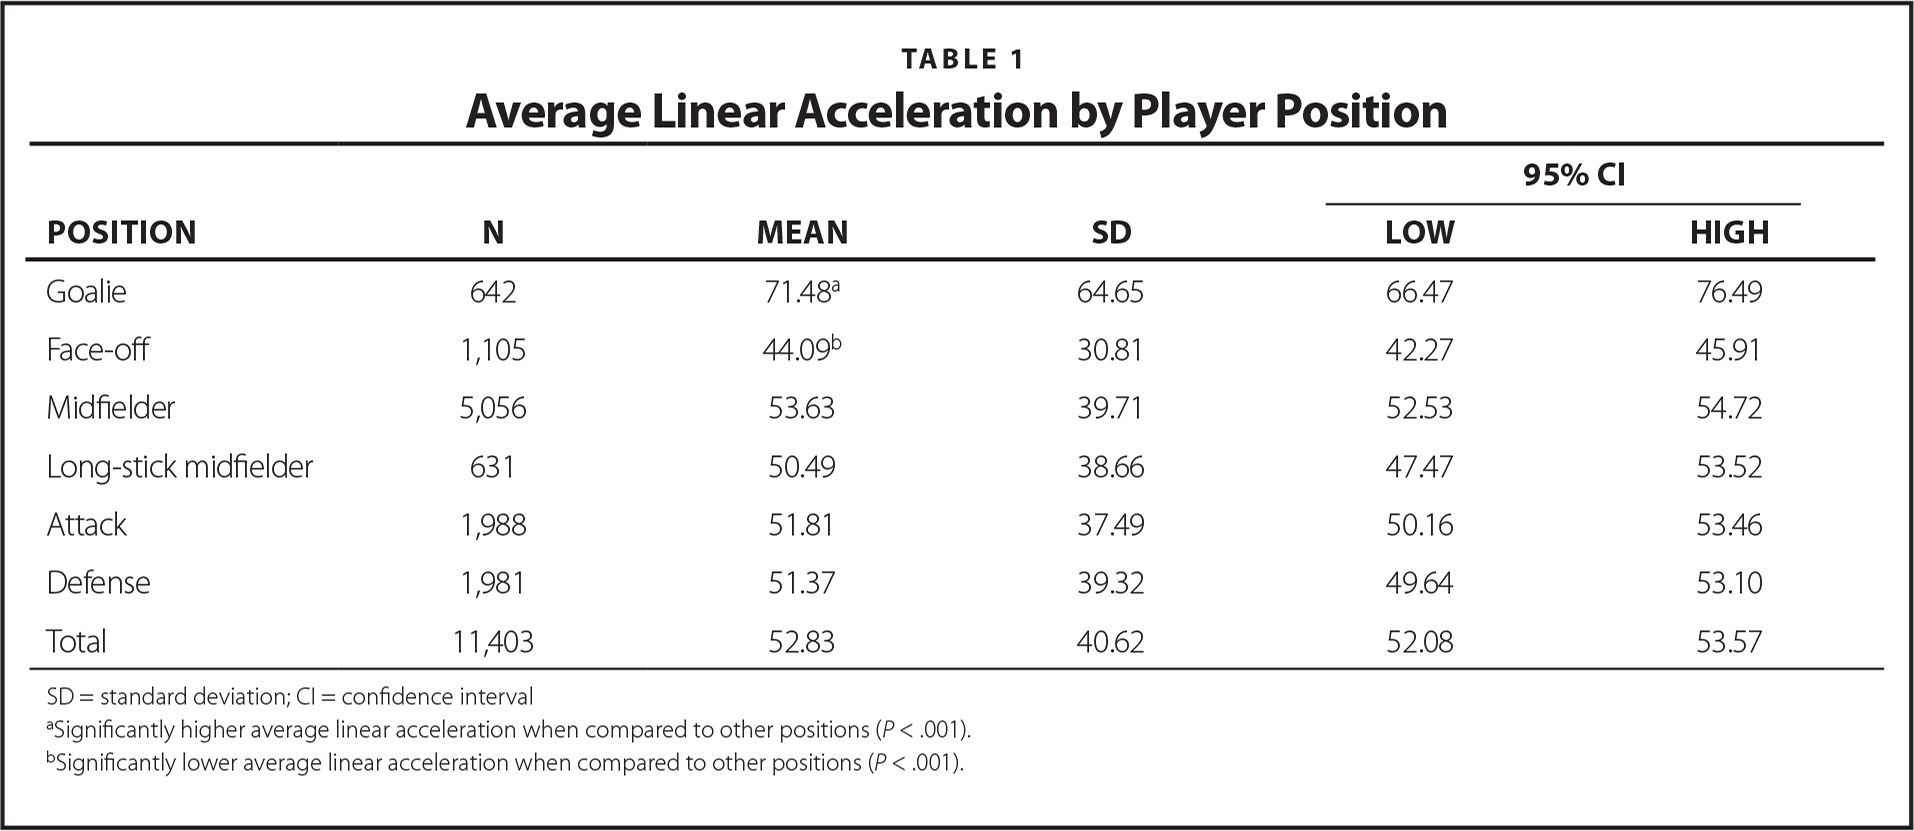 Average Linear Acceleration by Player Position